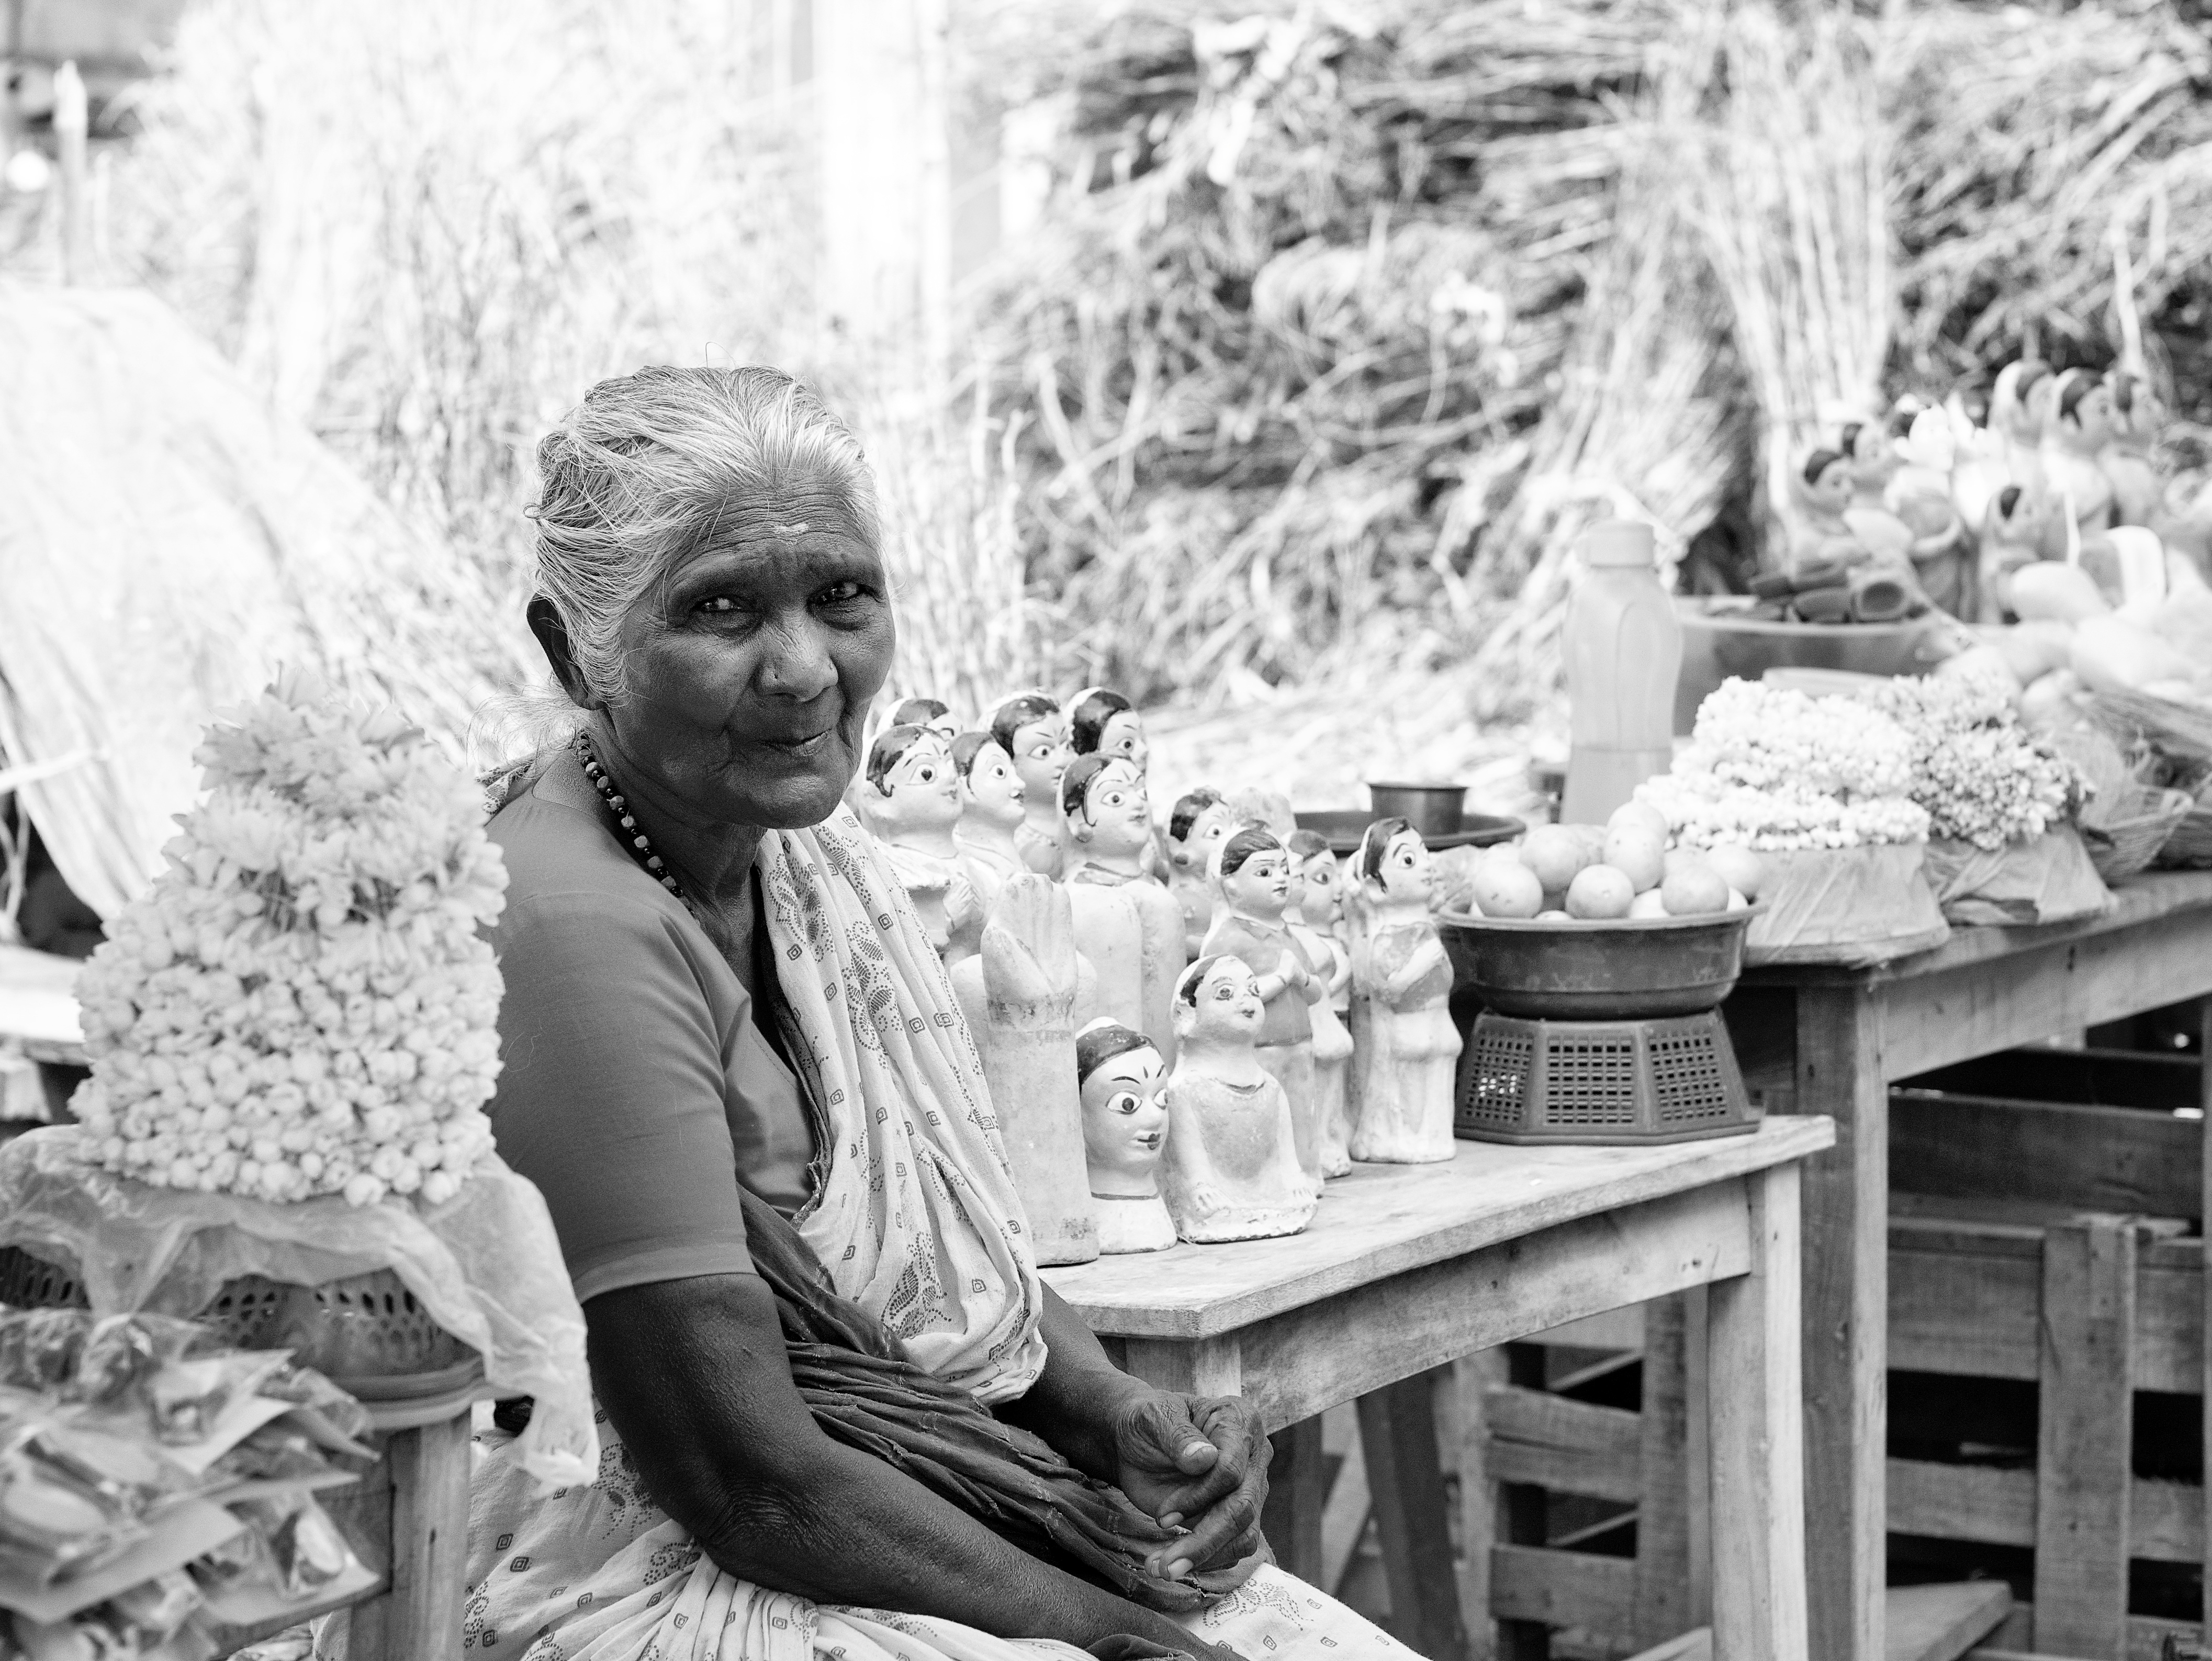 An old woman selling jasmine flowers, fruits and clay dolls in front of the temple. Virudhunagar, India